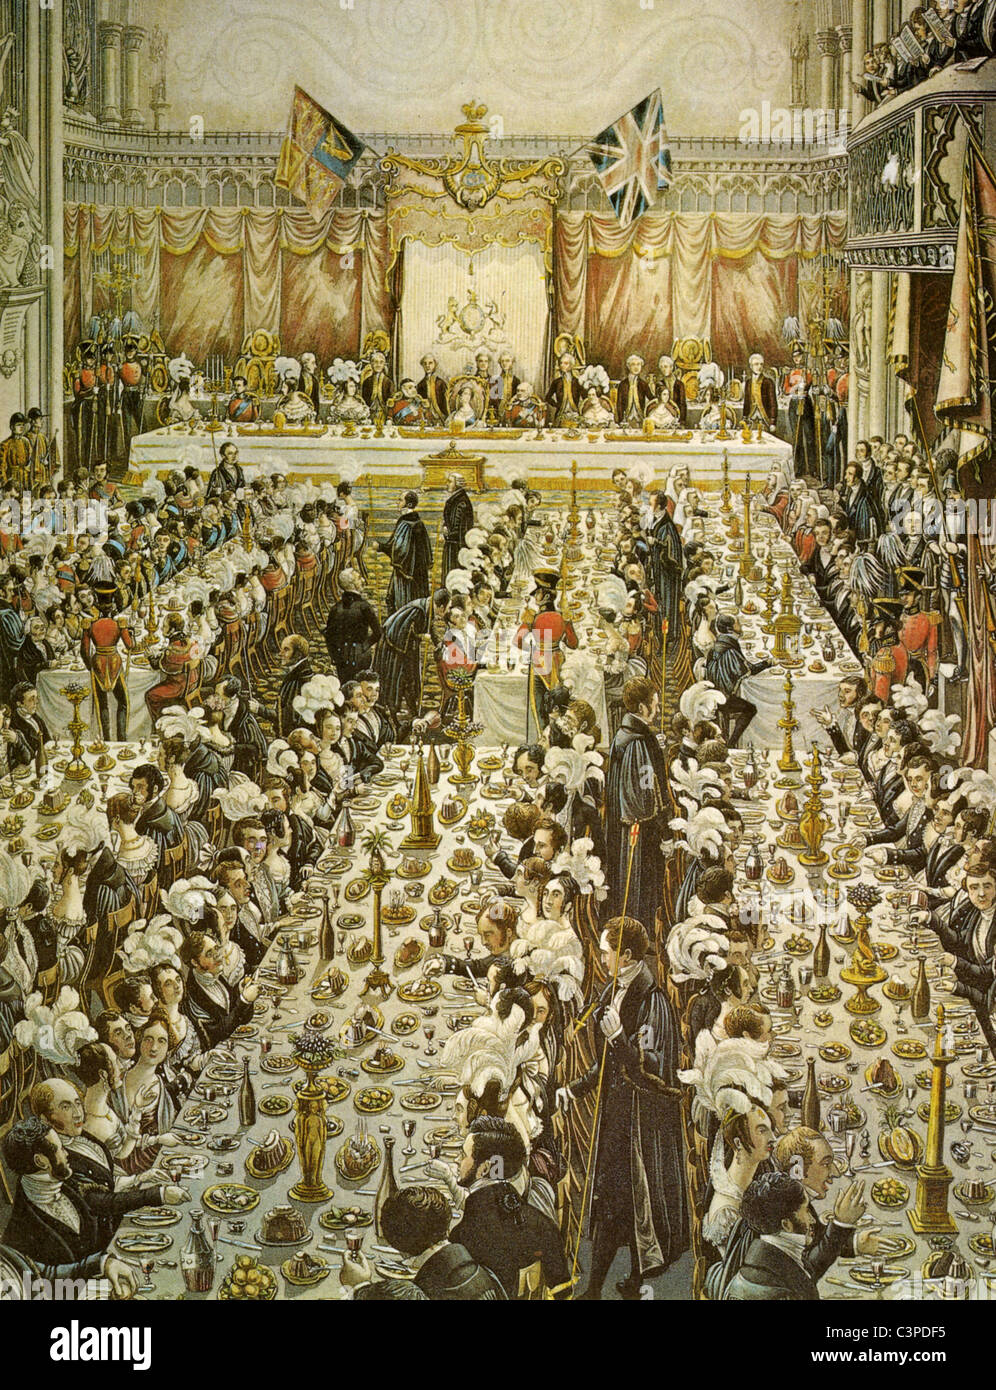 QUEEN VICTORIA  Banquet given for her by the Lord Mayor of London on 9 November 1837 - Stock Image